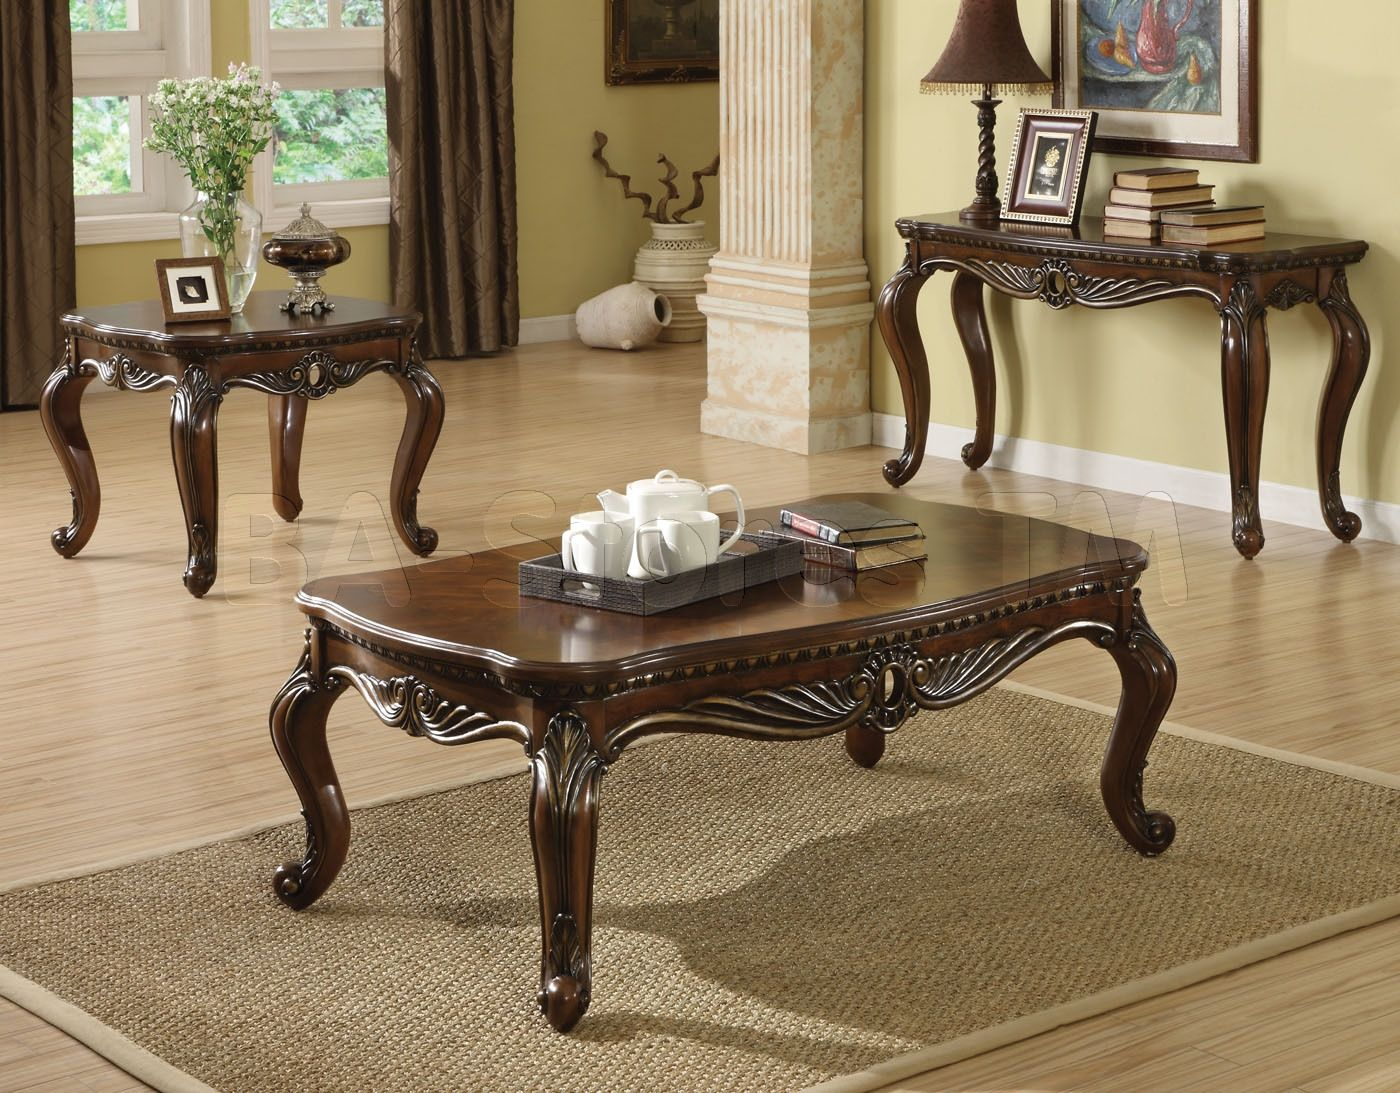 Traditional Coffee And End Table Sets  Httptherapybychance Unique No Furniture Living Room Inspiration Design